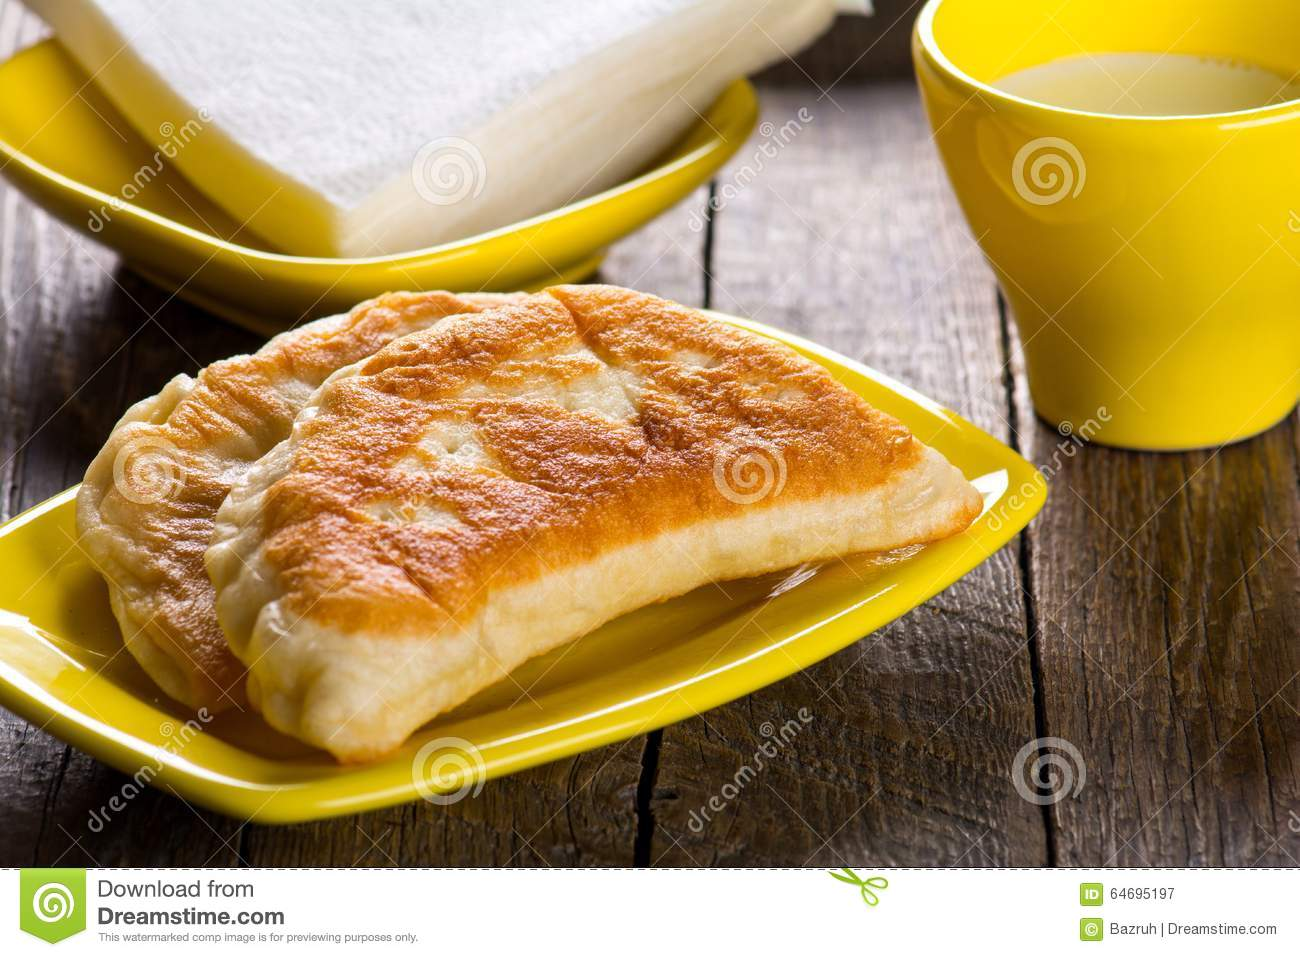 Hot dinner, tasty meat pie with milk.